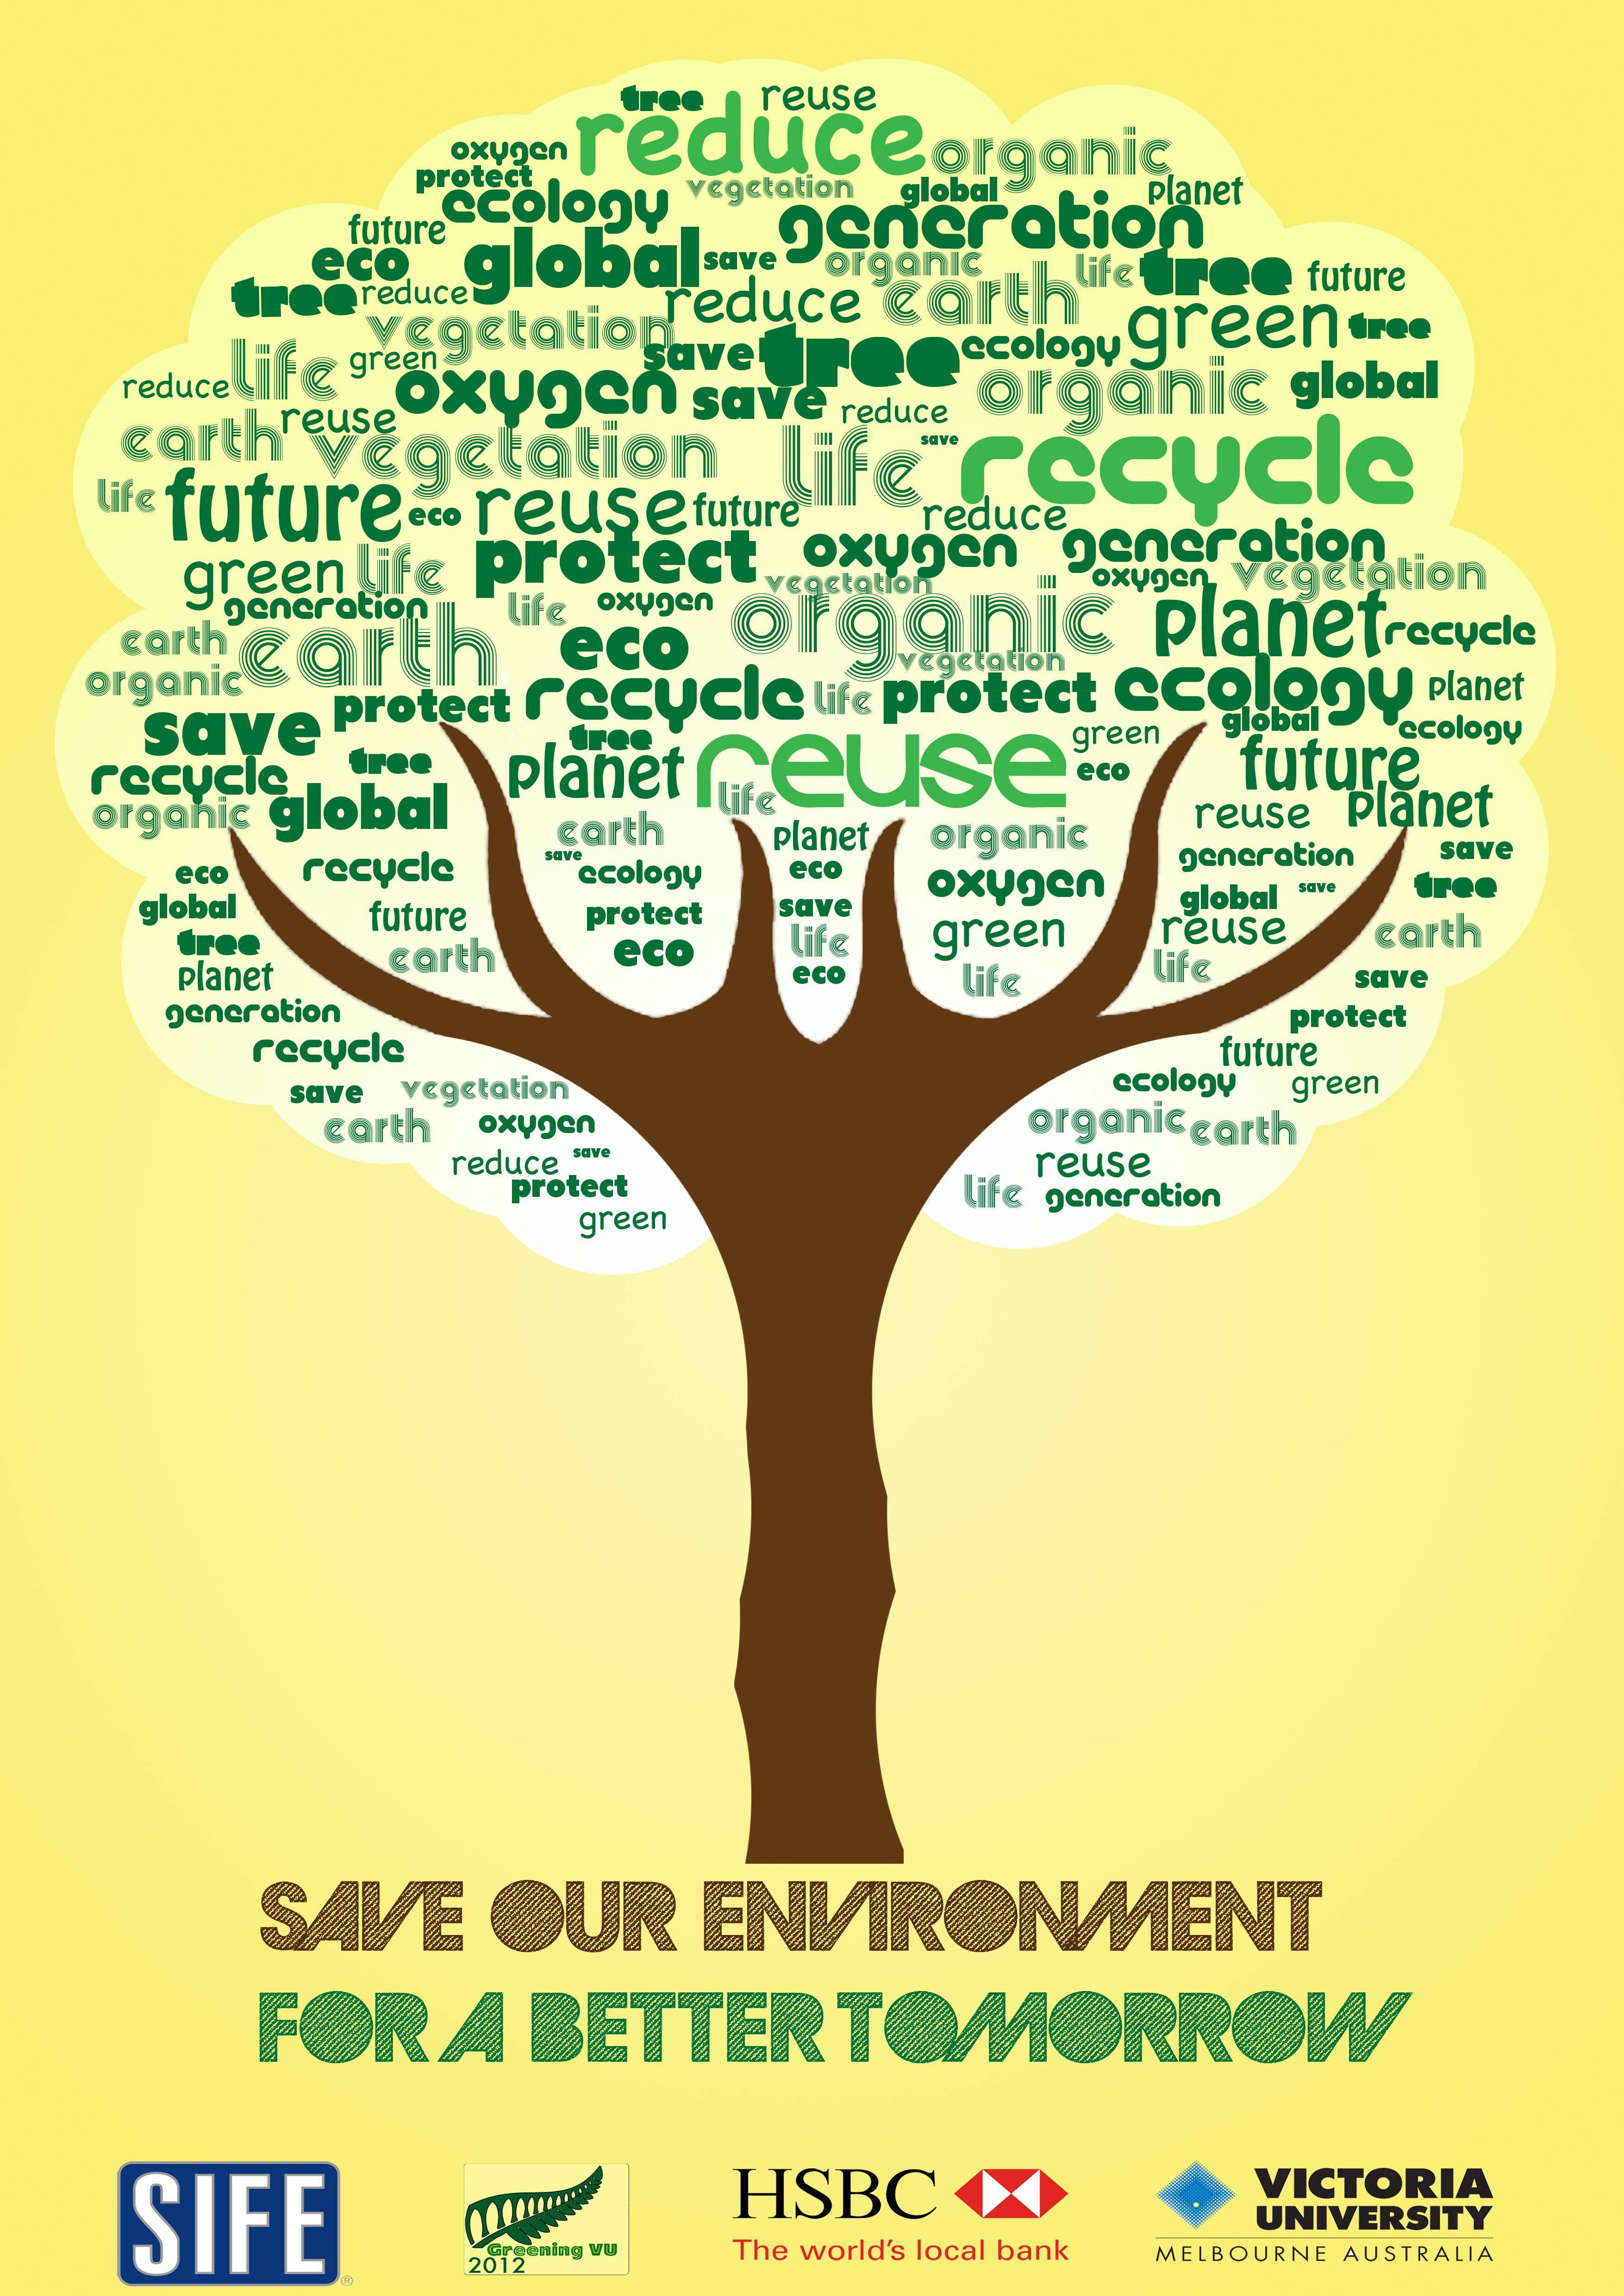 Christians and the Environment: How Should Christians Think about the Environment?